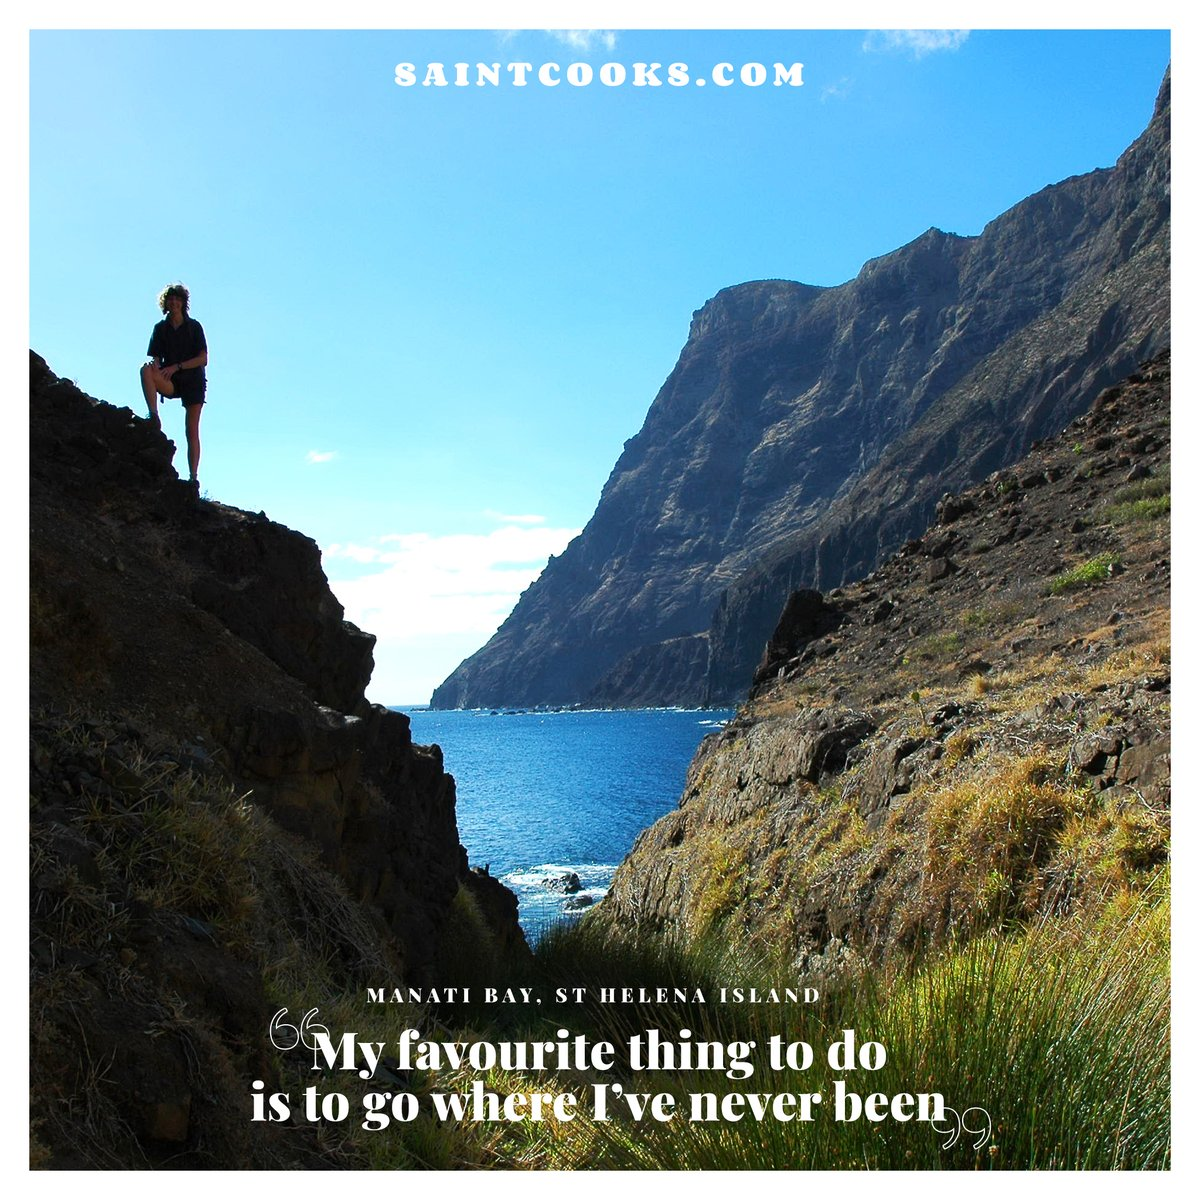 """Sharing the beauty of St Helena 🇸🇭 """"My favourite thing to do s to go where I've never been"""" Please RETWEET 🙏  photo: Andrew Darlow #sthelena #sthelenaisland #saintcooks #travel #travelphotography #photography #nature #wanderlust #adventure #explore #travelling #landscape"""